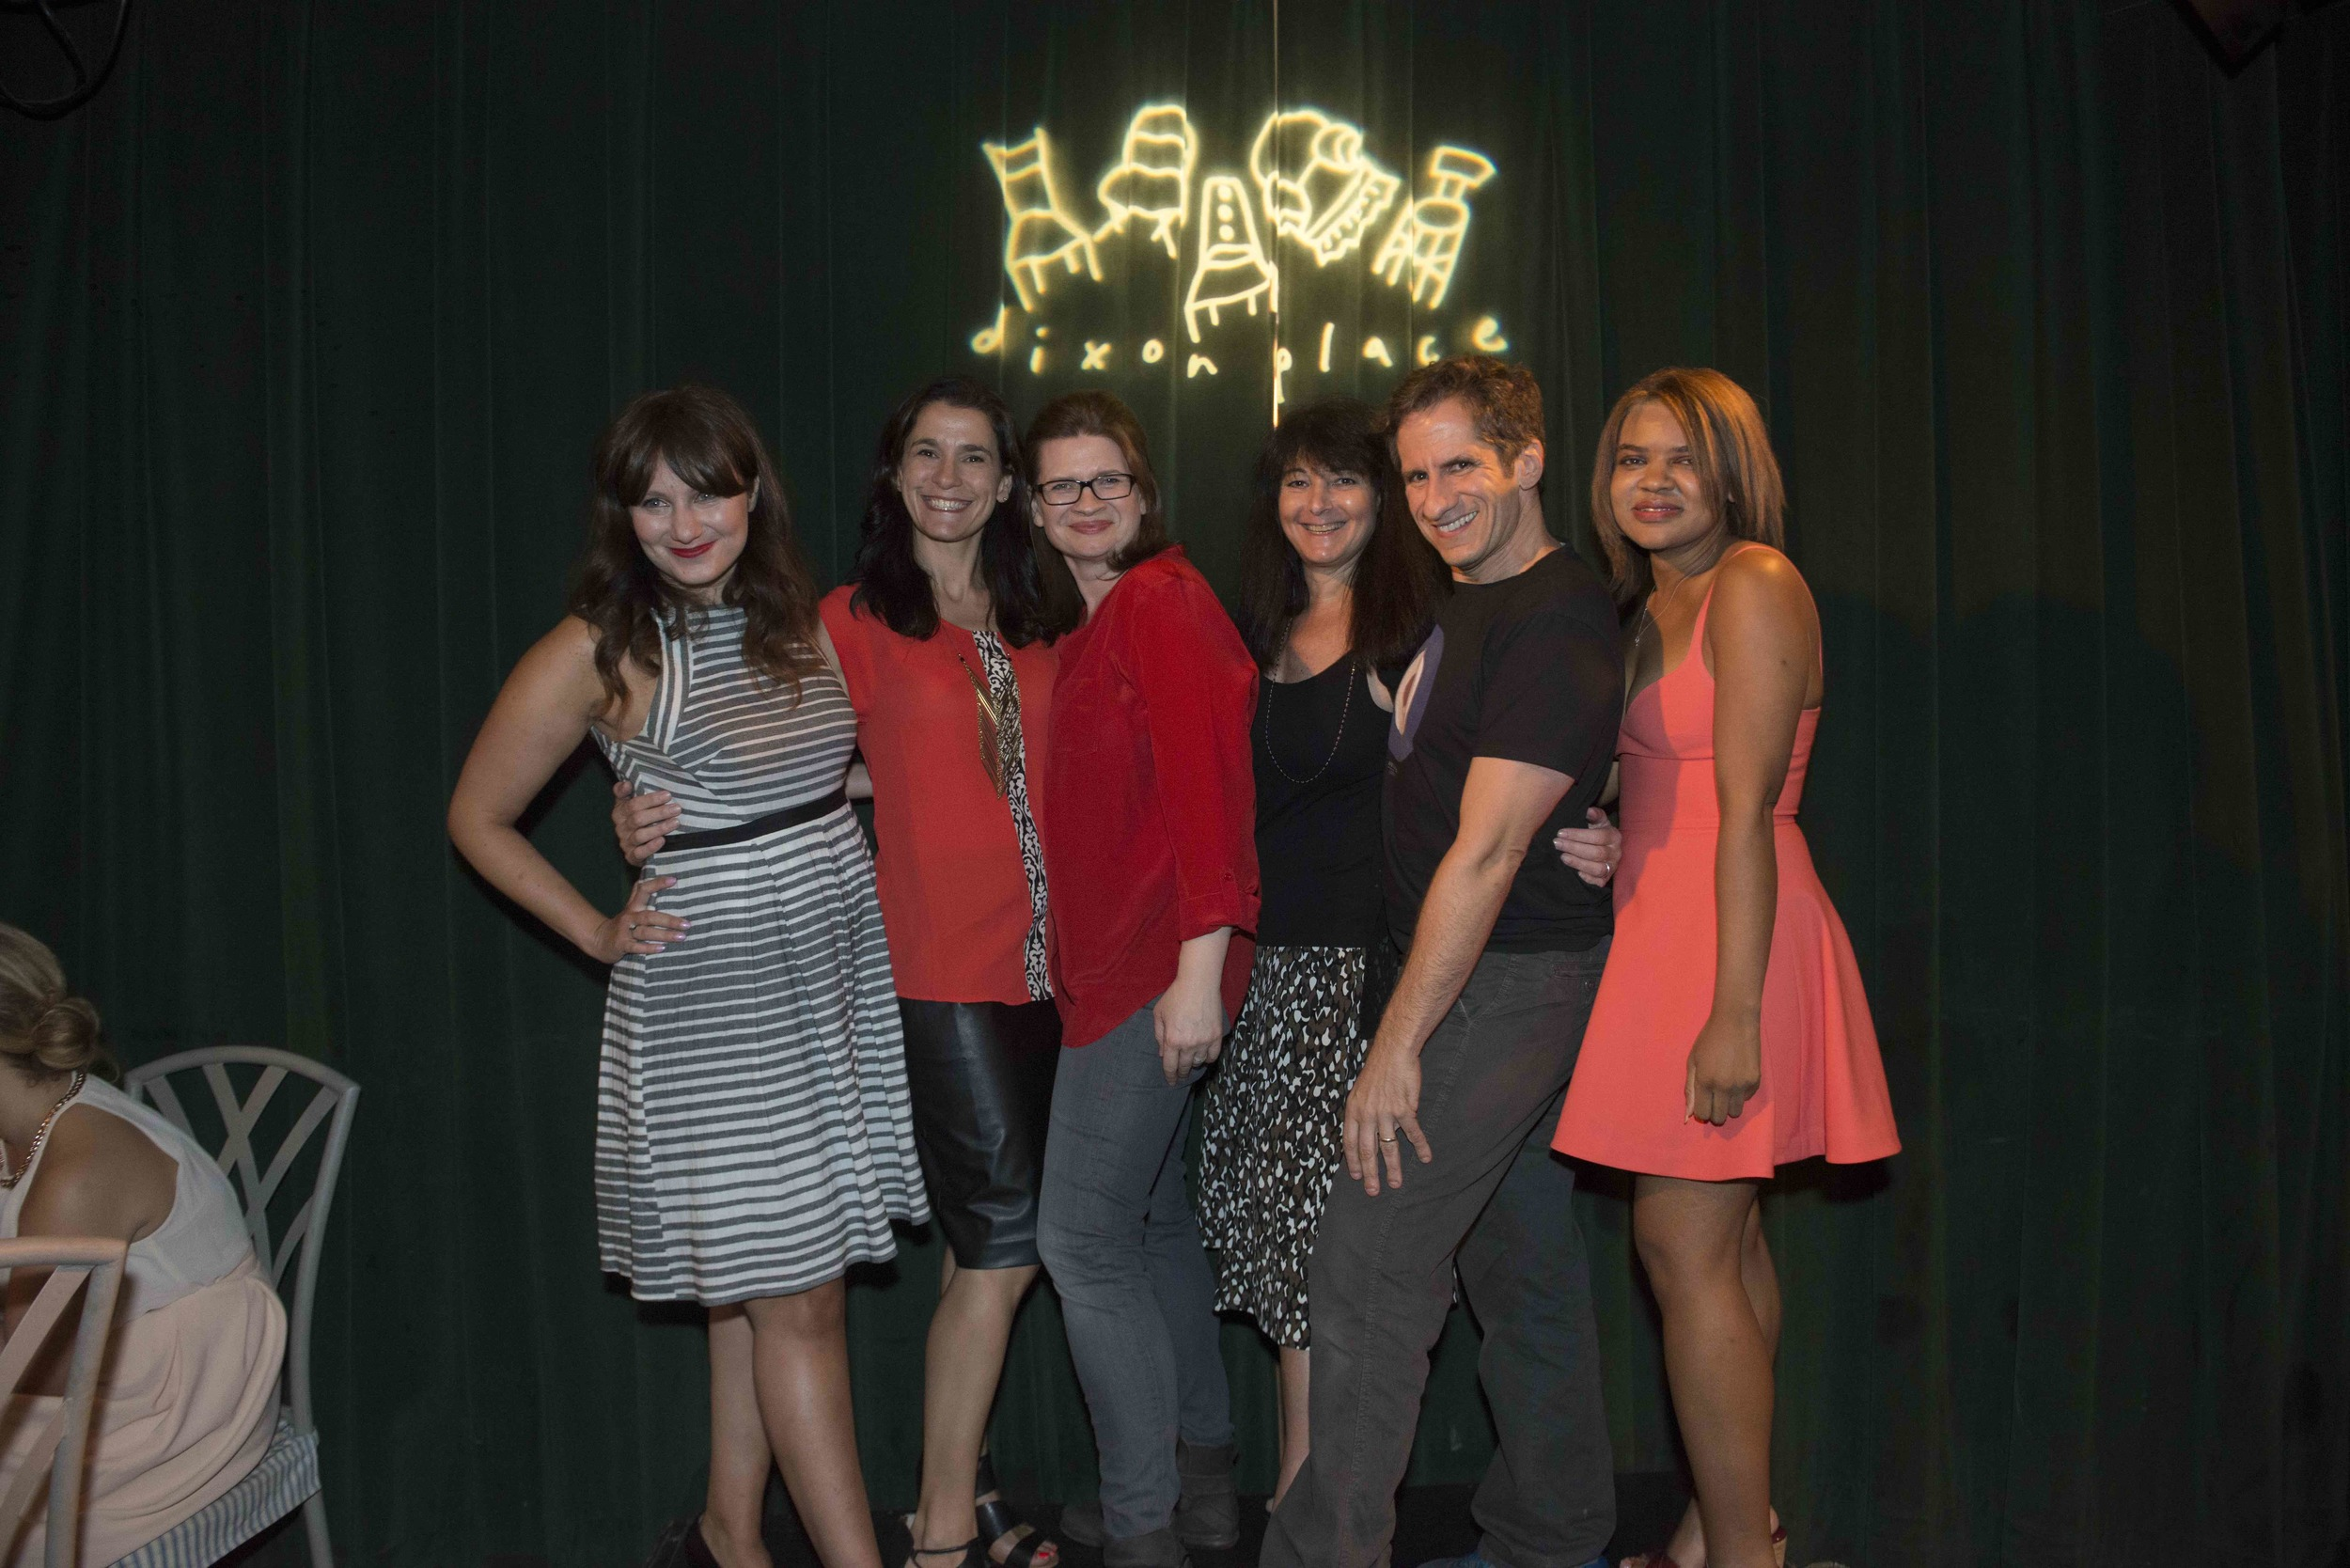 Hanging out in the lounge after our show on September 17, 2015 - Kass Morgan, Joy Peskin, Emmy Laybourne, Susan Shapiro, Seth Rudetsky, and Danielle Paige. We did not co-ordinate the coral/black and white wardrobe, I swear!